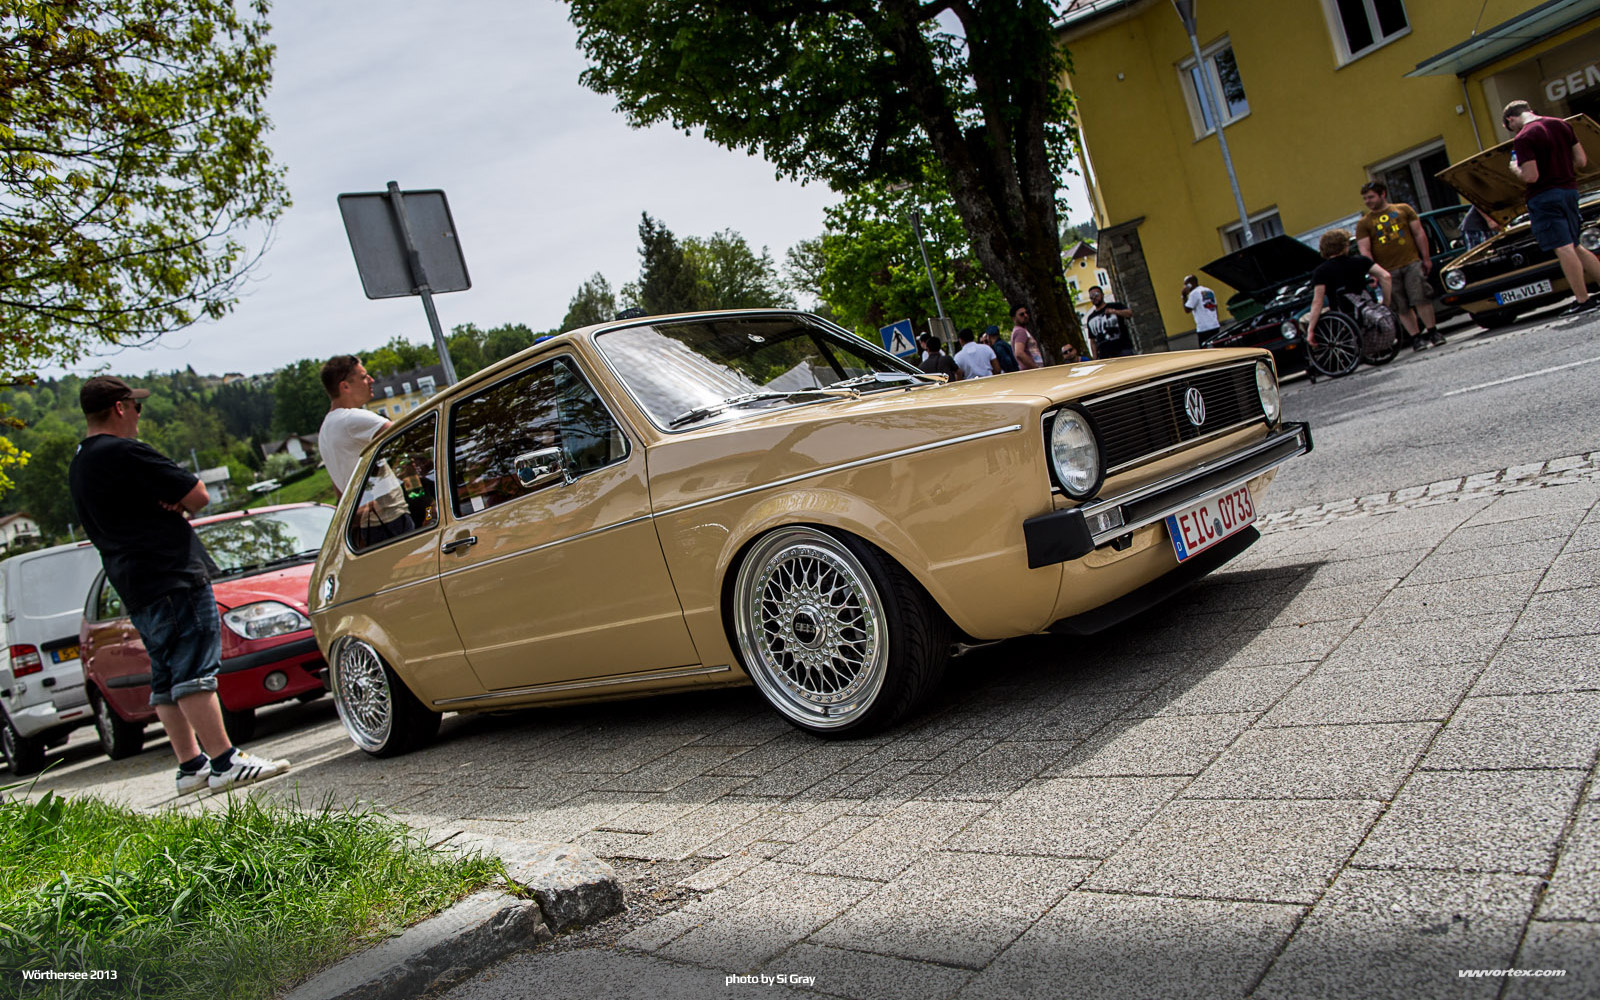 worthersee-2013-gallery-si-gray-170